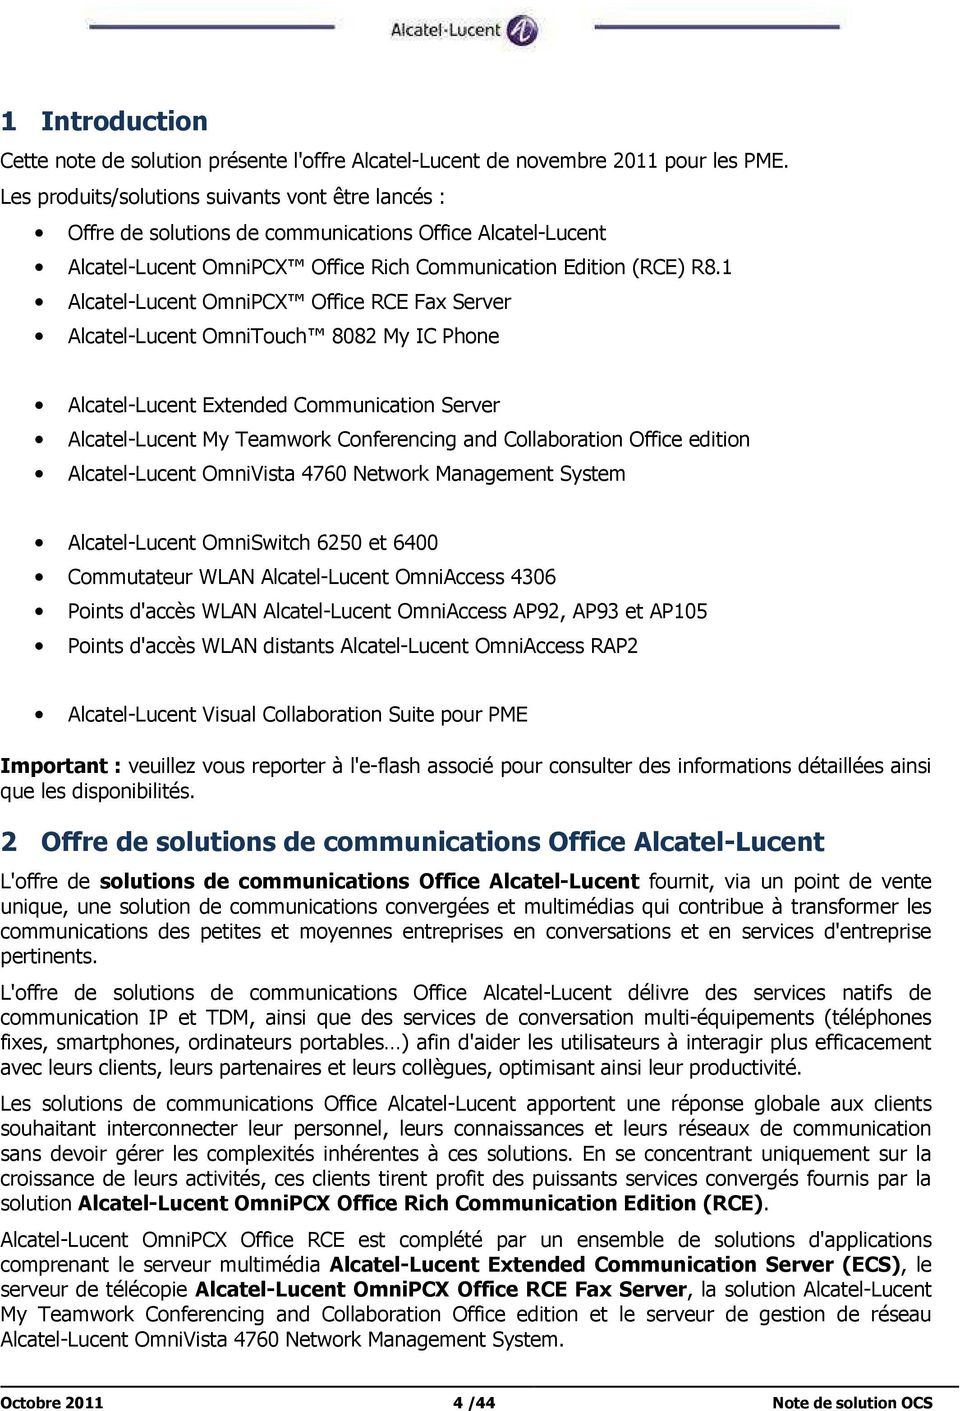 1 Alcatel-Lucent OmniPCX Office RCE Fax Server Alcatel-Lucent OmniTouch 8082 My IC Phone Alcatel-Lucent Extended Communication Server Alcatel-Lucent My Teamwork Conferencing and Collaboration Office